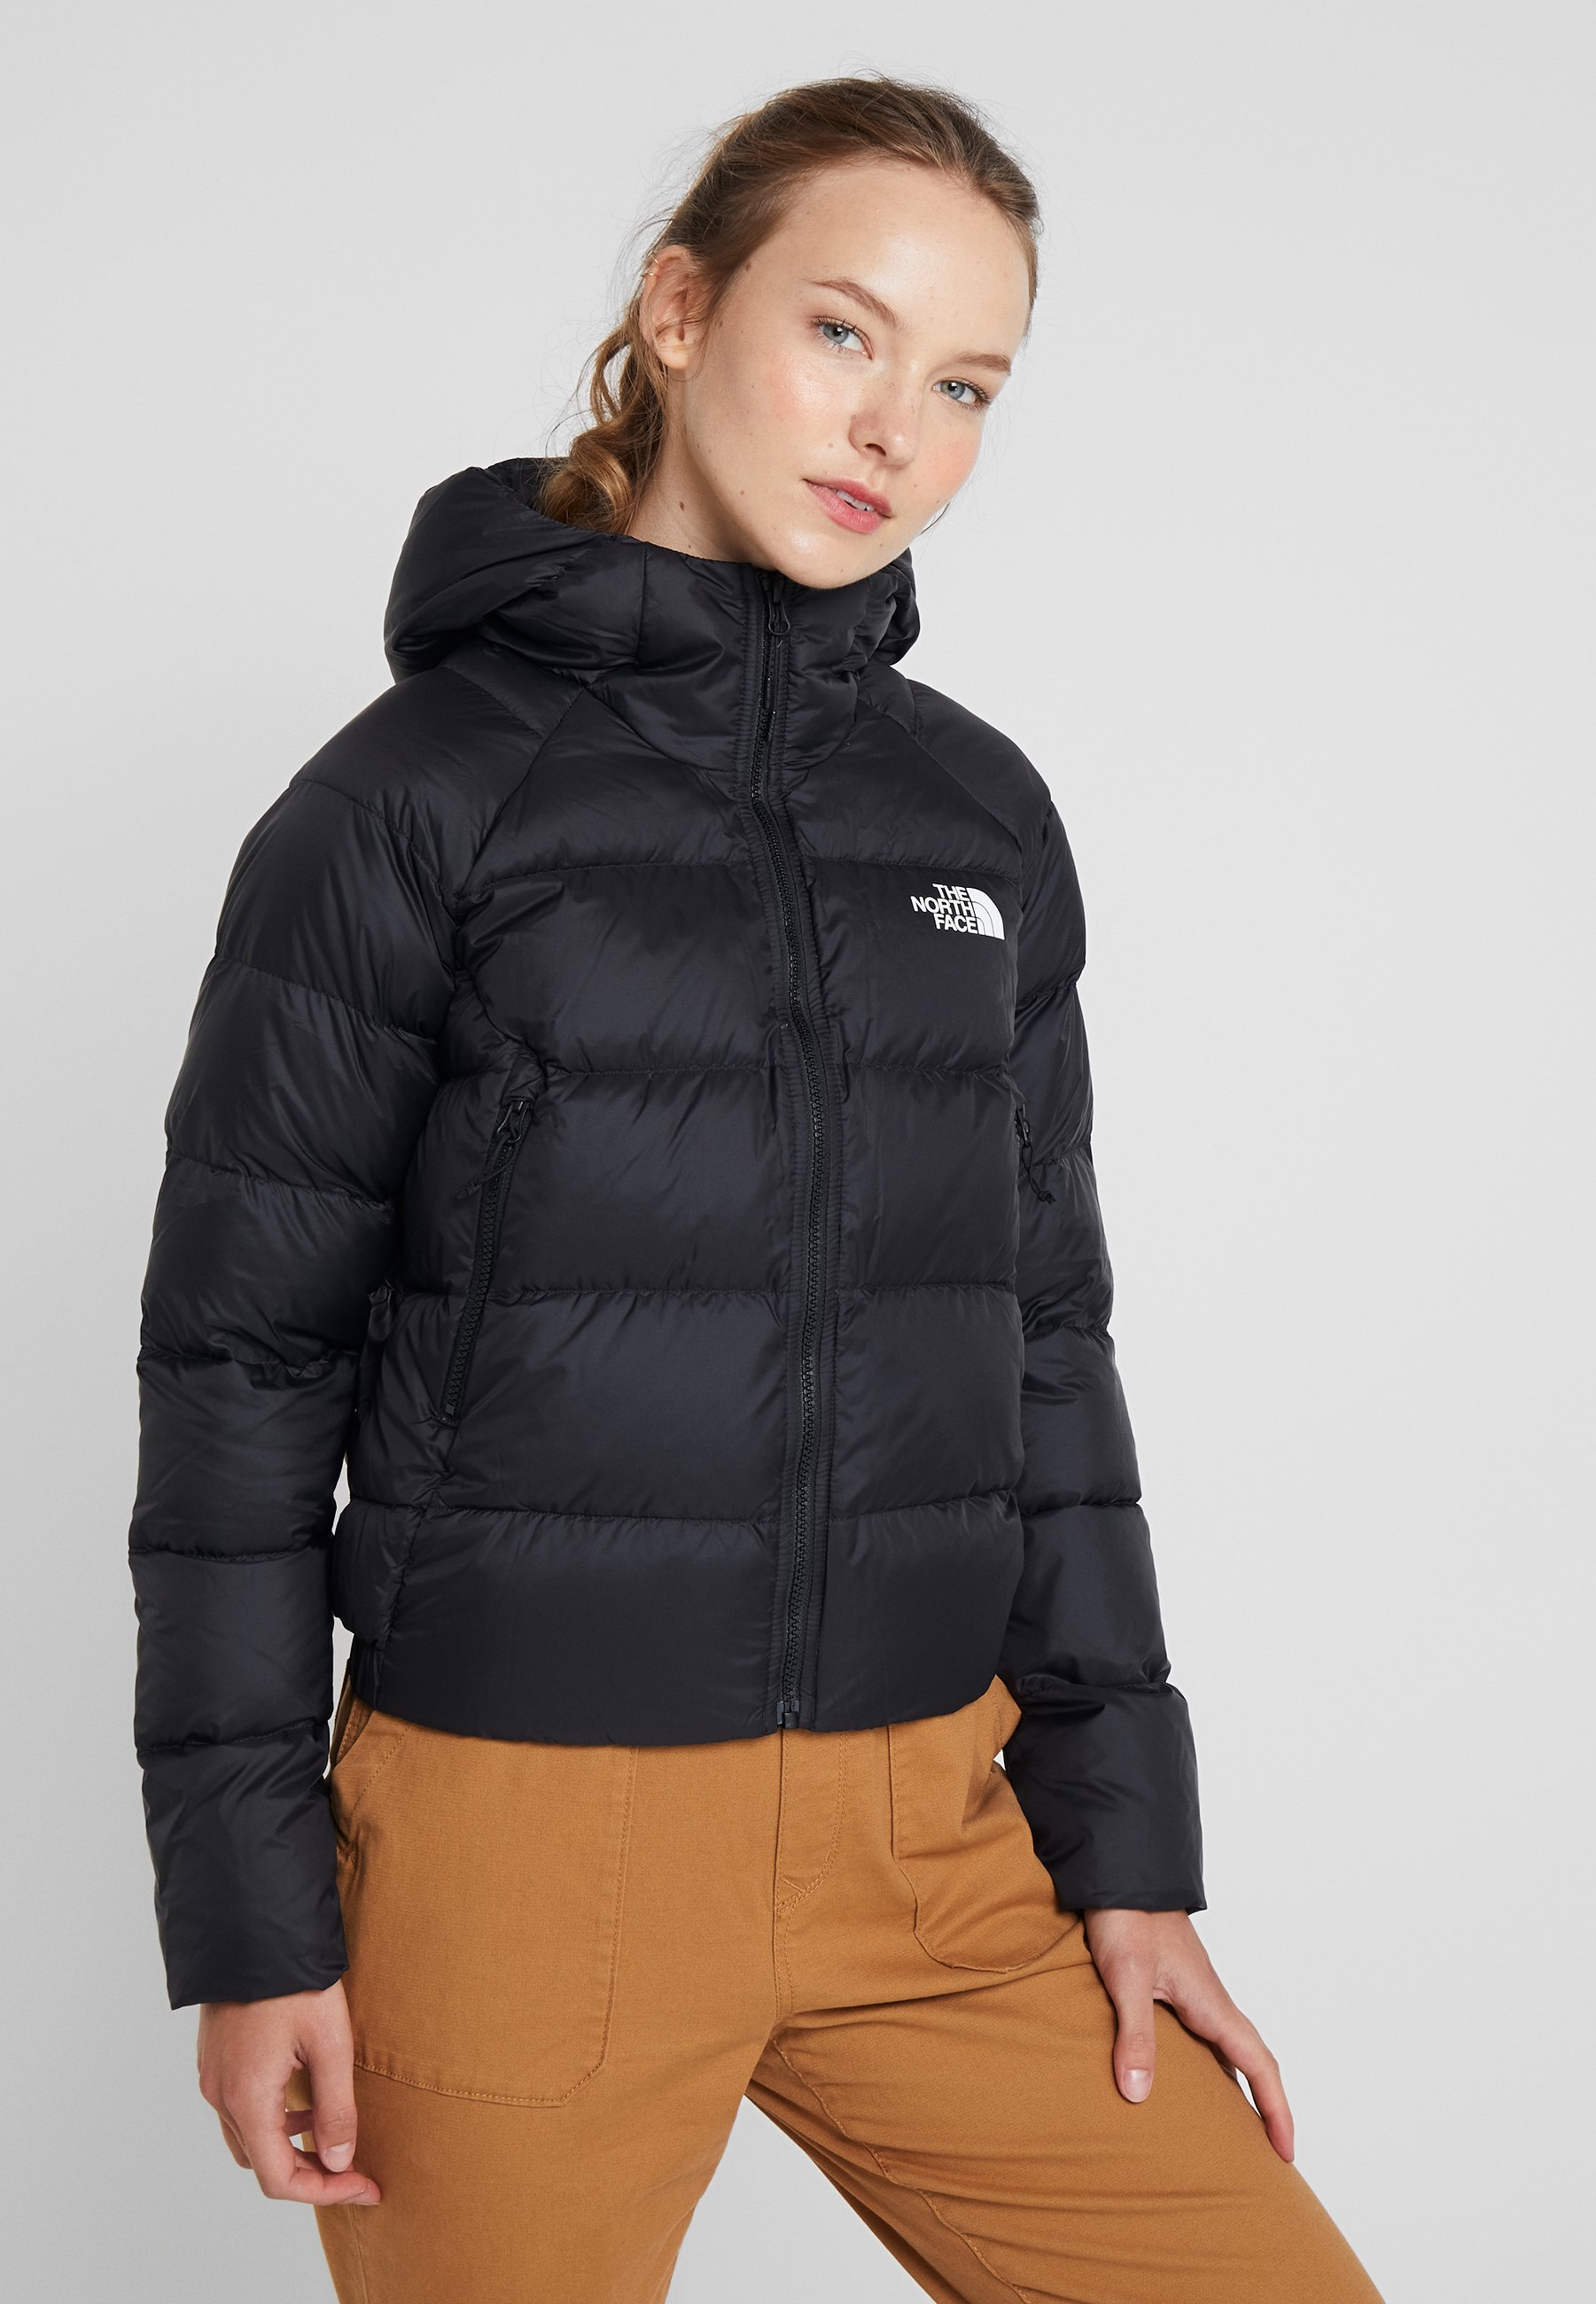 Face Hyalite HoodieDoudoune Black North The Tnf NnXP8wO0k